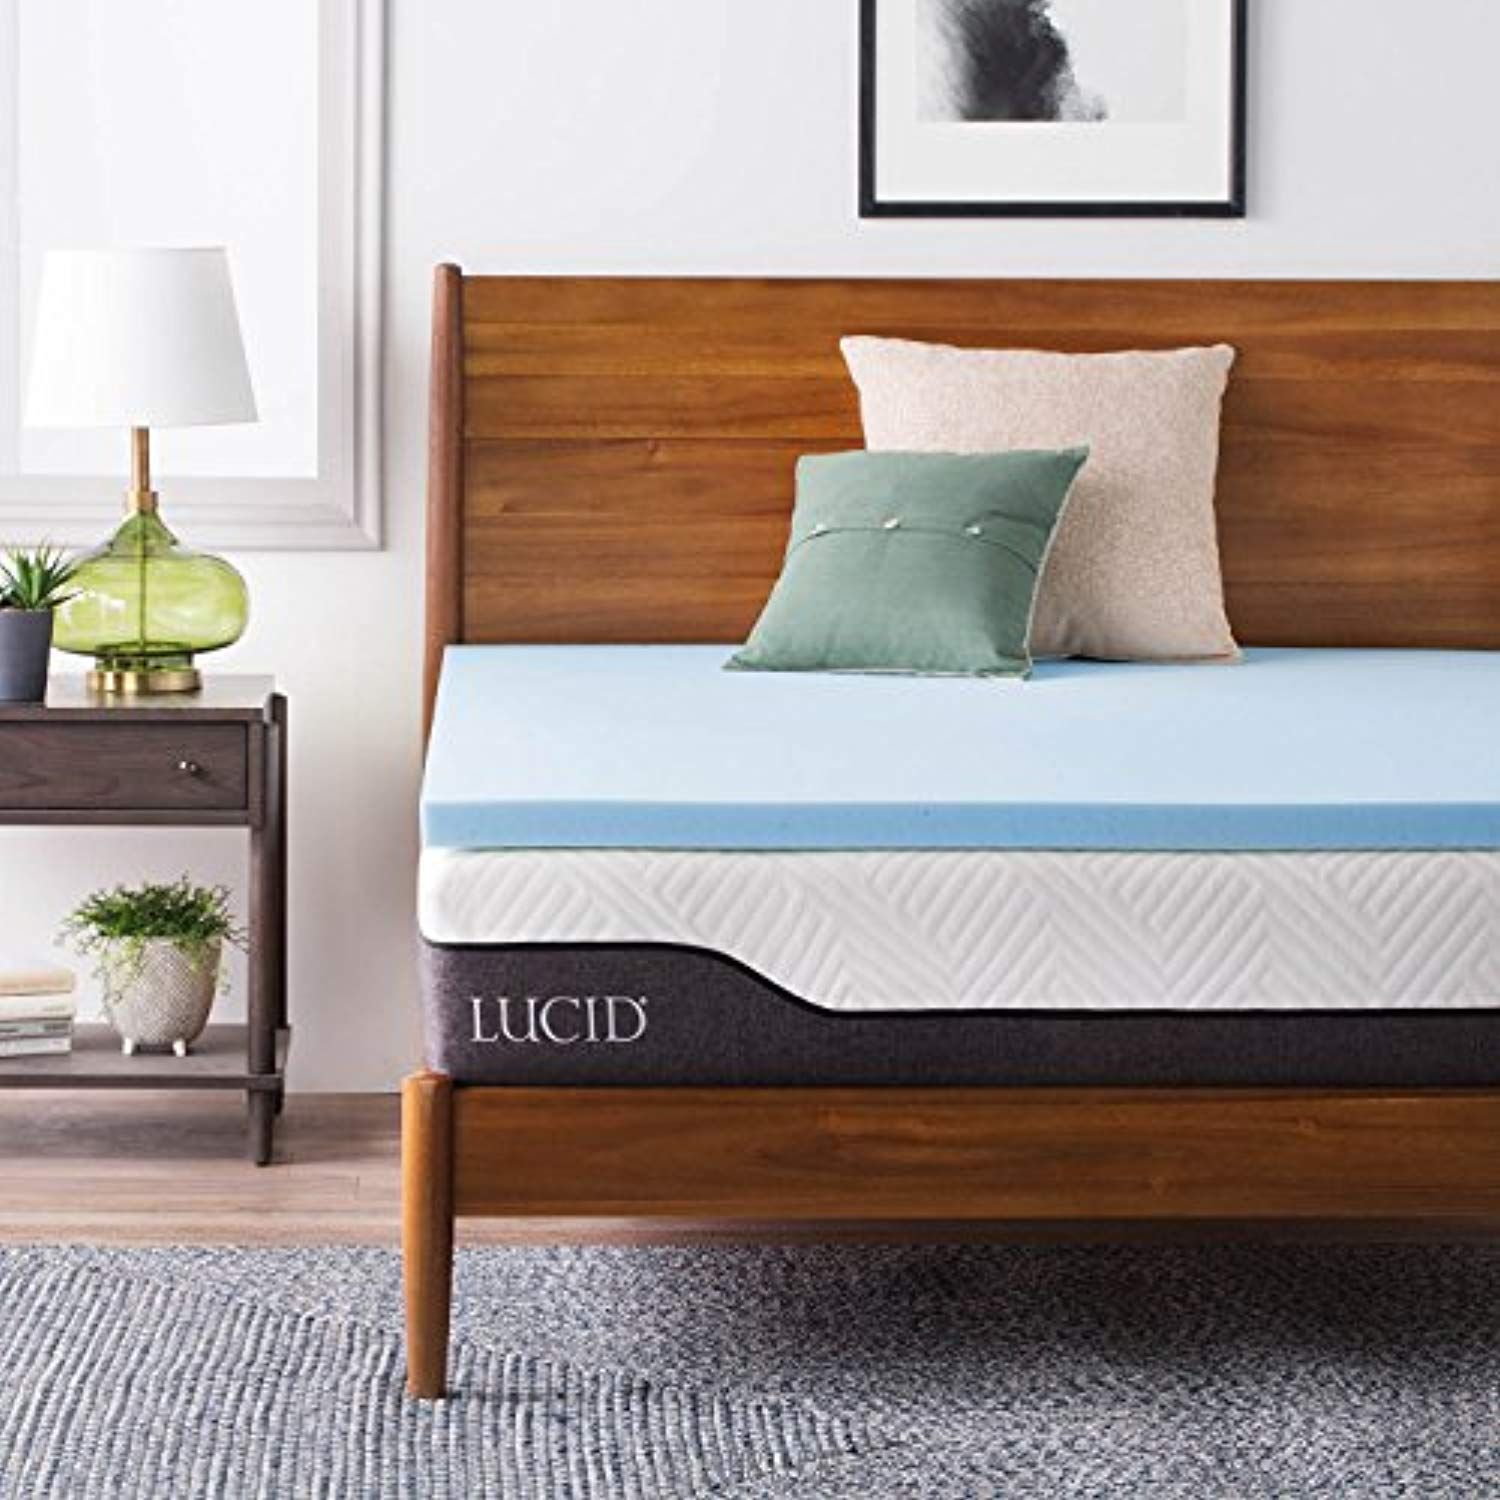 Lucid 2 Inch Gel Infused Memory Foam Mattress Topper Queen Check Out This Great Product Memory Foam Mattress Topper Foam Mattress Topper Mattress Topper